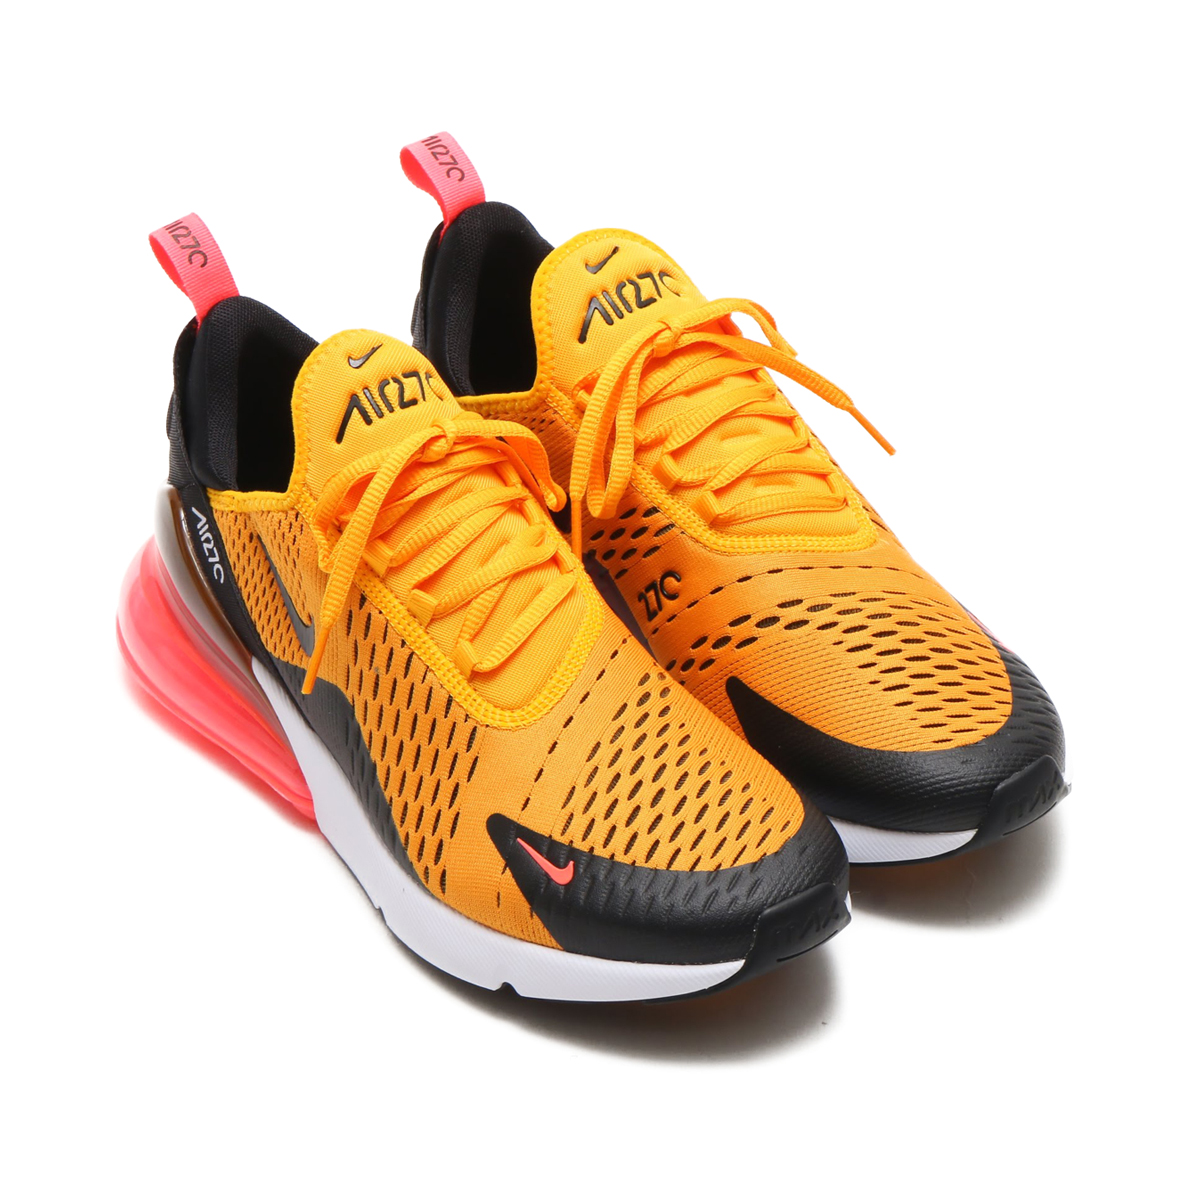 buy online 73c30 90cfd NIKE AIR MAX 270 (ナイキ エア マックス 270) BLACK/UNIVERSITY GOLD-HOT  PUNCH-WHITE【メンズ レディース スニーカー】18SP-S|atmos-tokyo